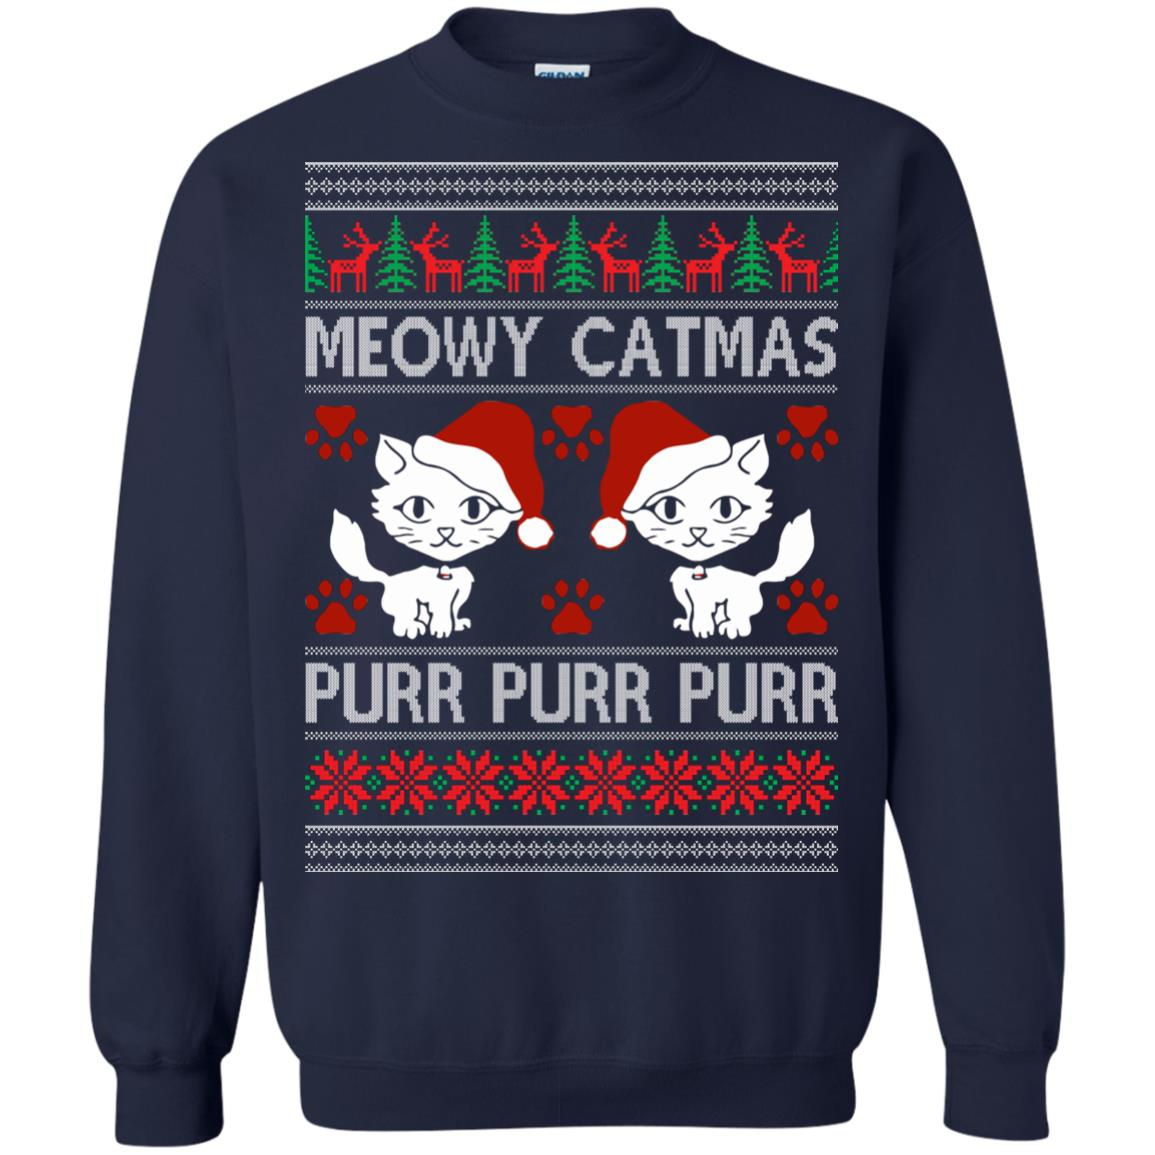 image 1167px Meowy Catmas Purr Purr Christmas Sweater, Cat Lover Sweatshirt